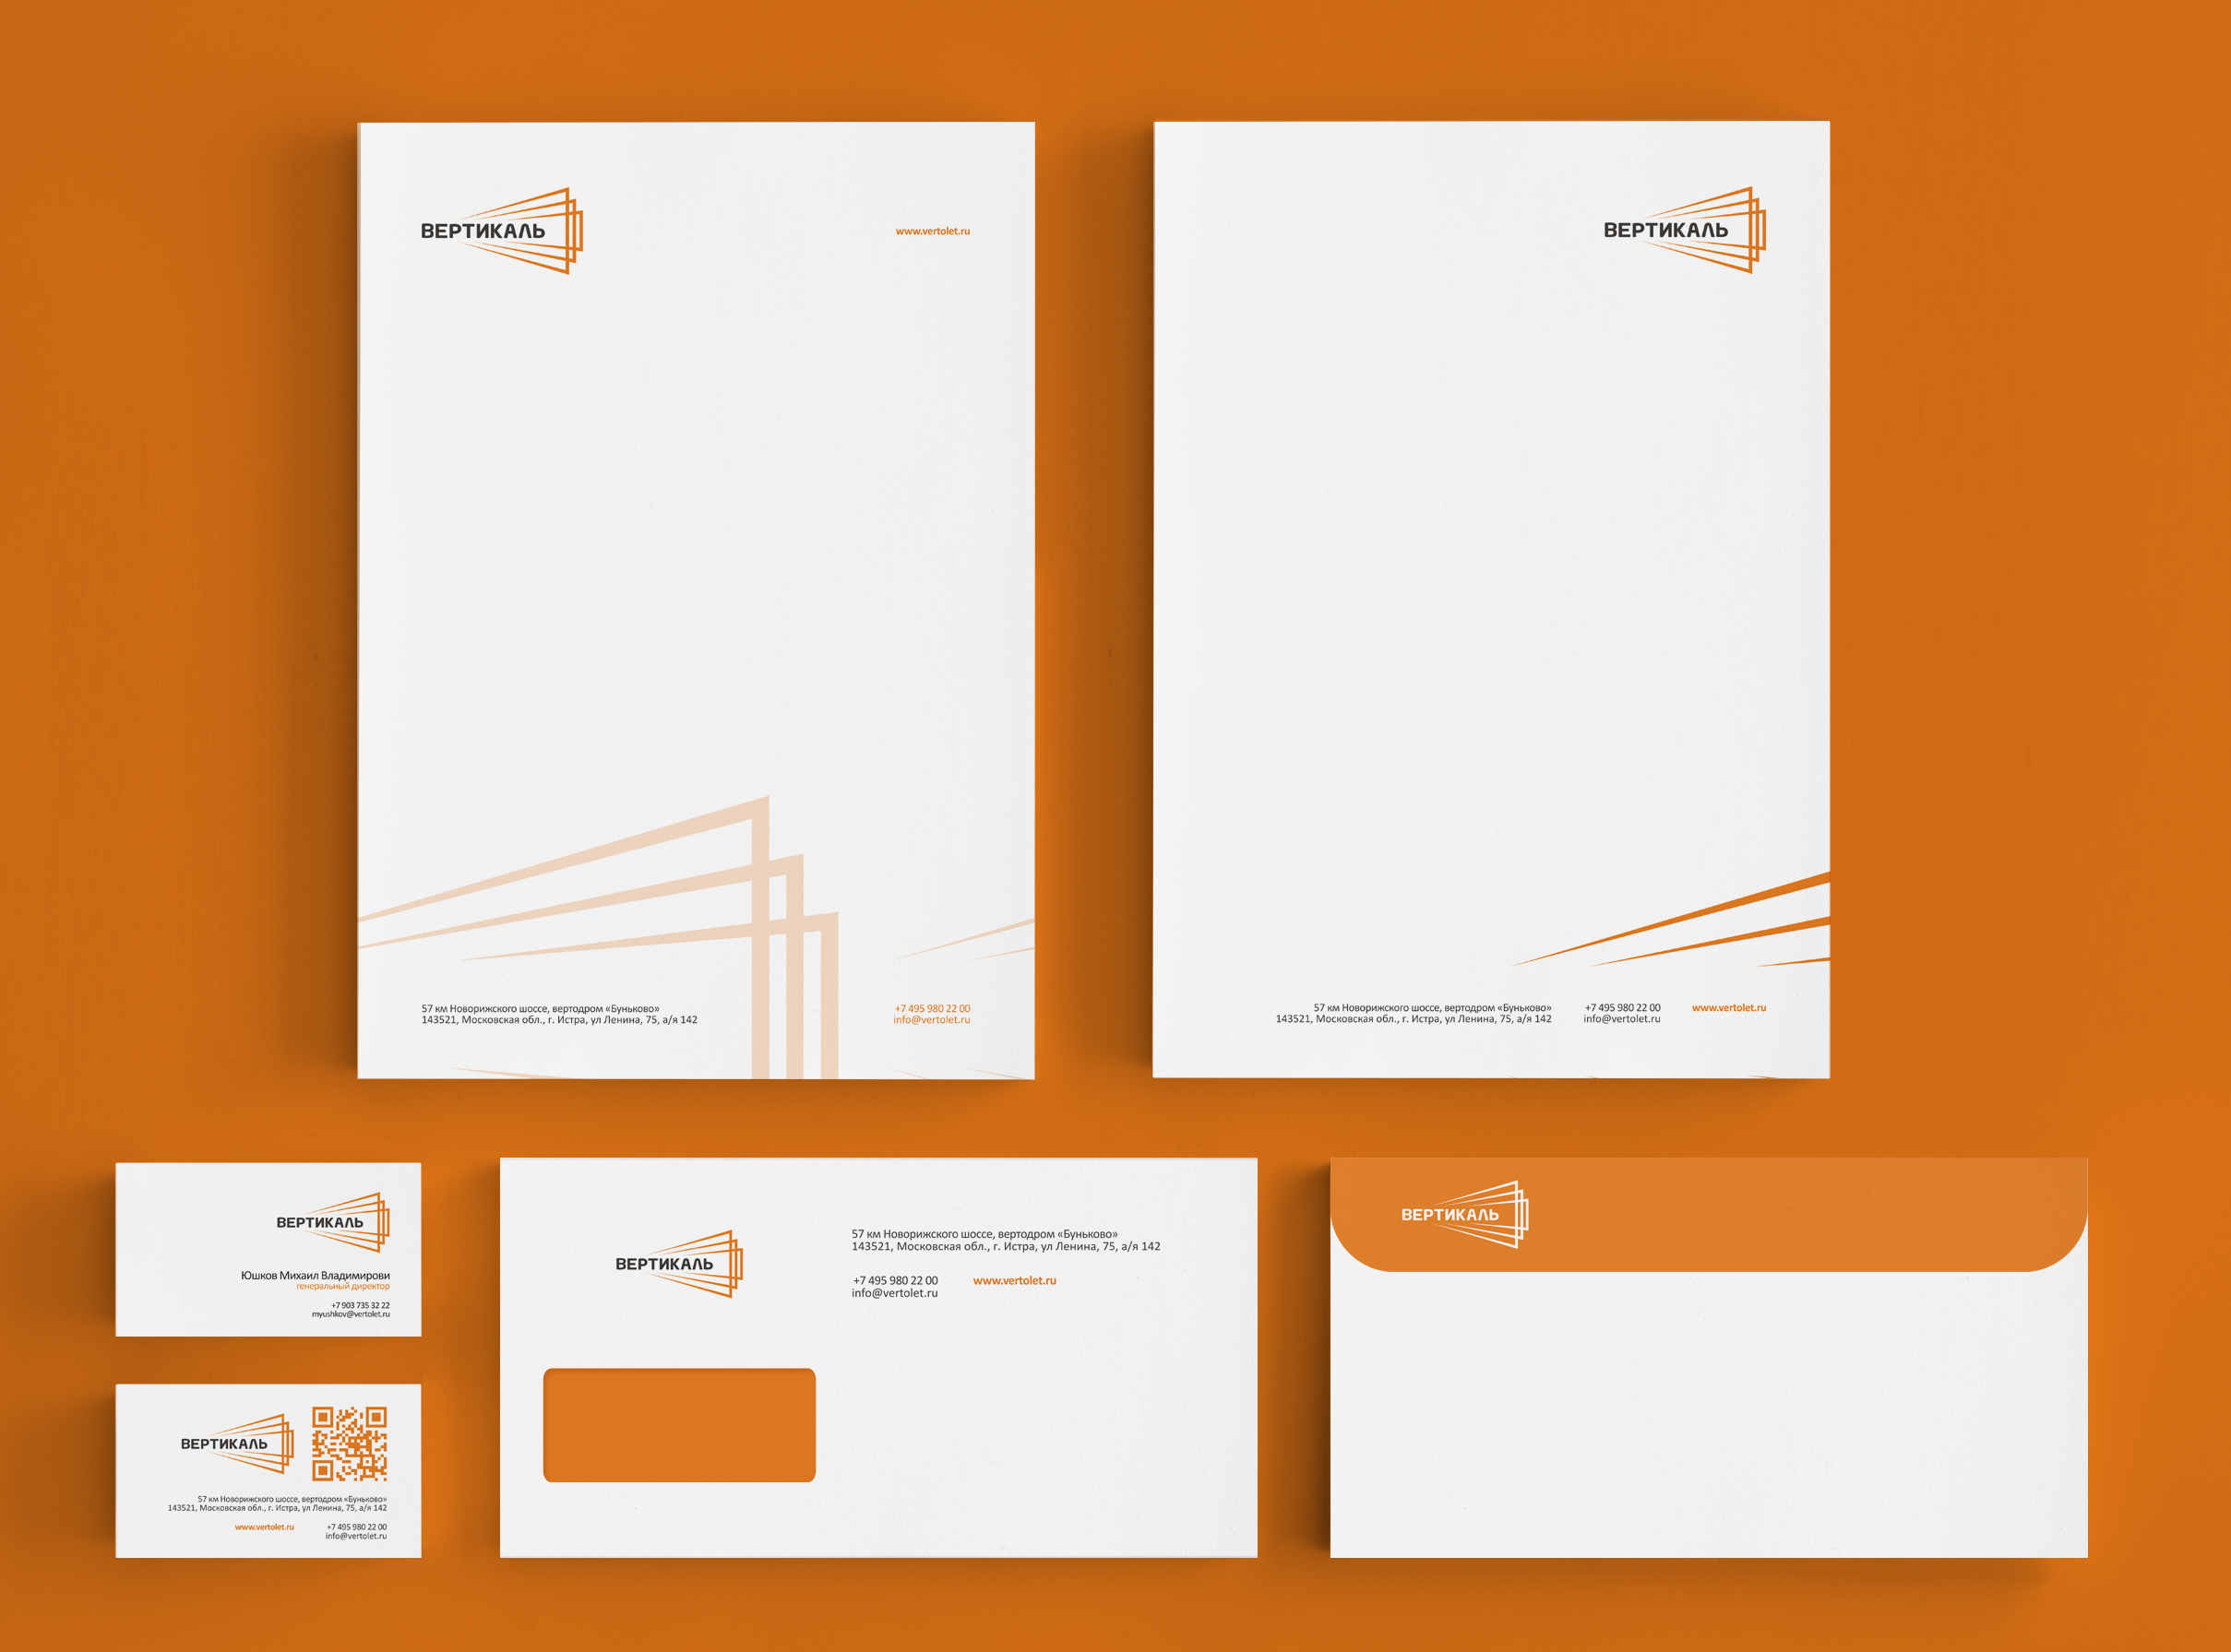 Vertikal-lecture-hall-stationery-design-by-alex-tass